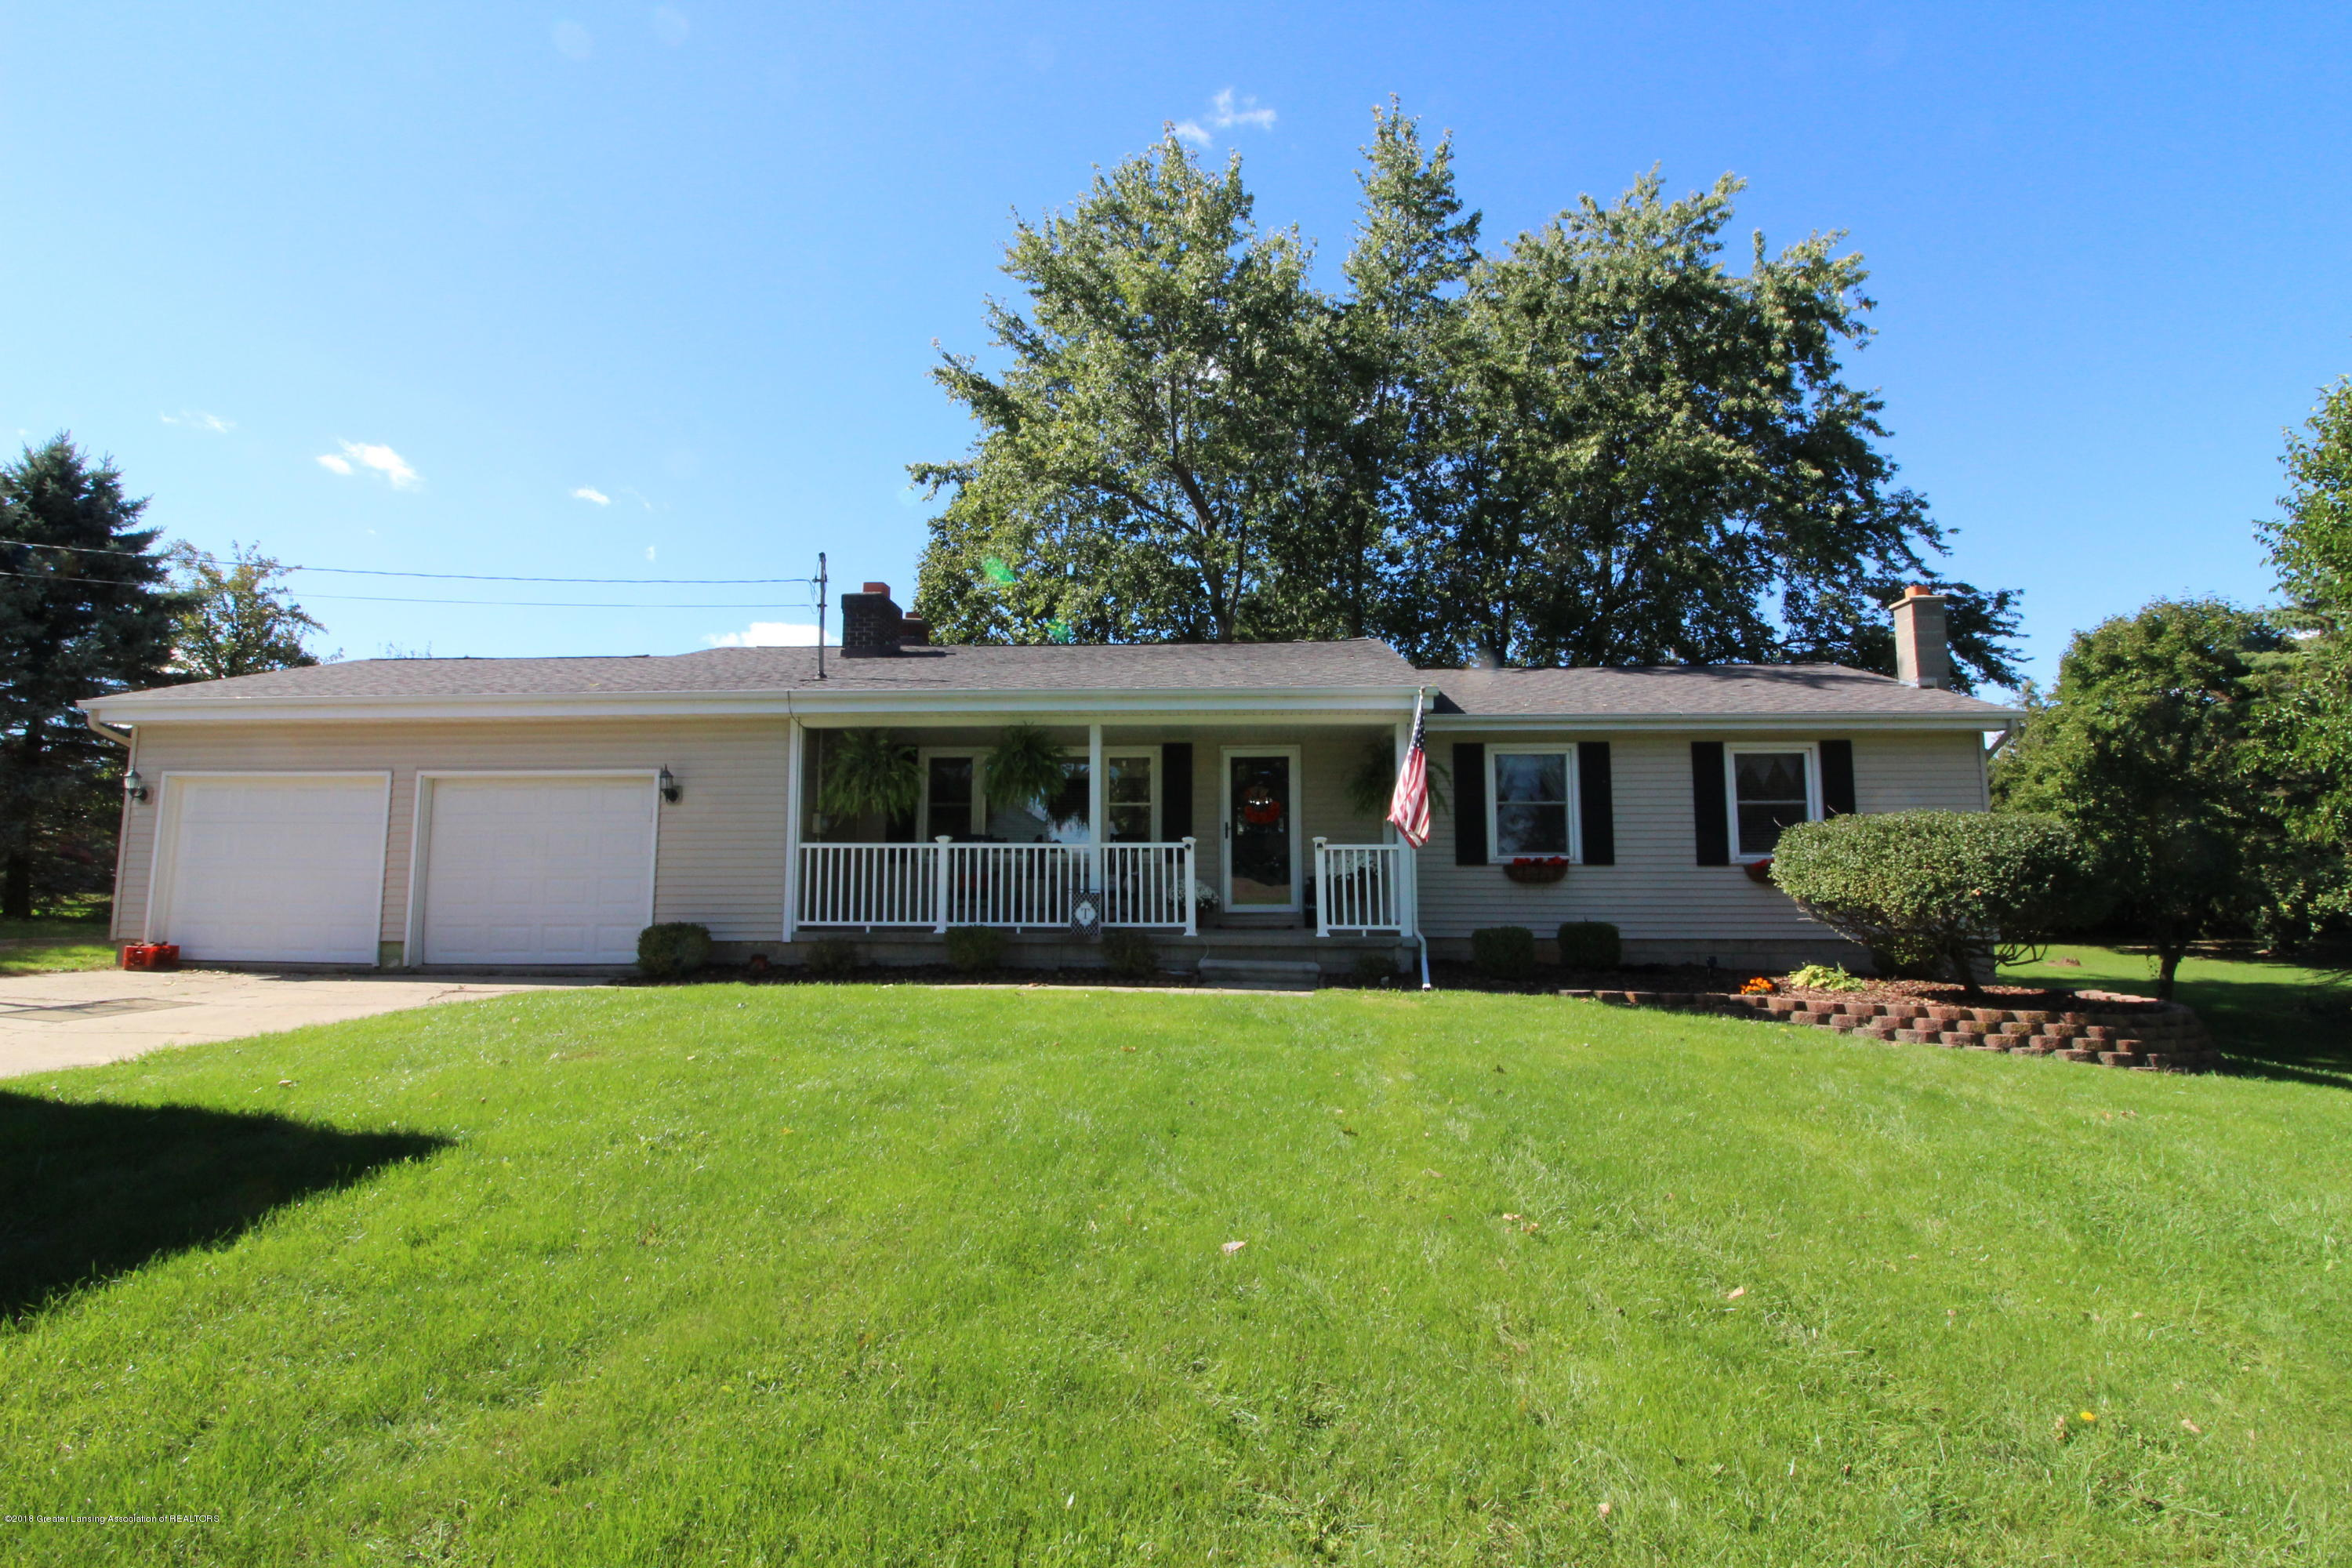 6744 S Lowell Rd - Exterior - 1